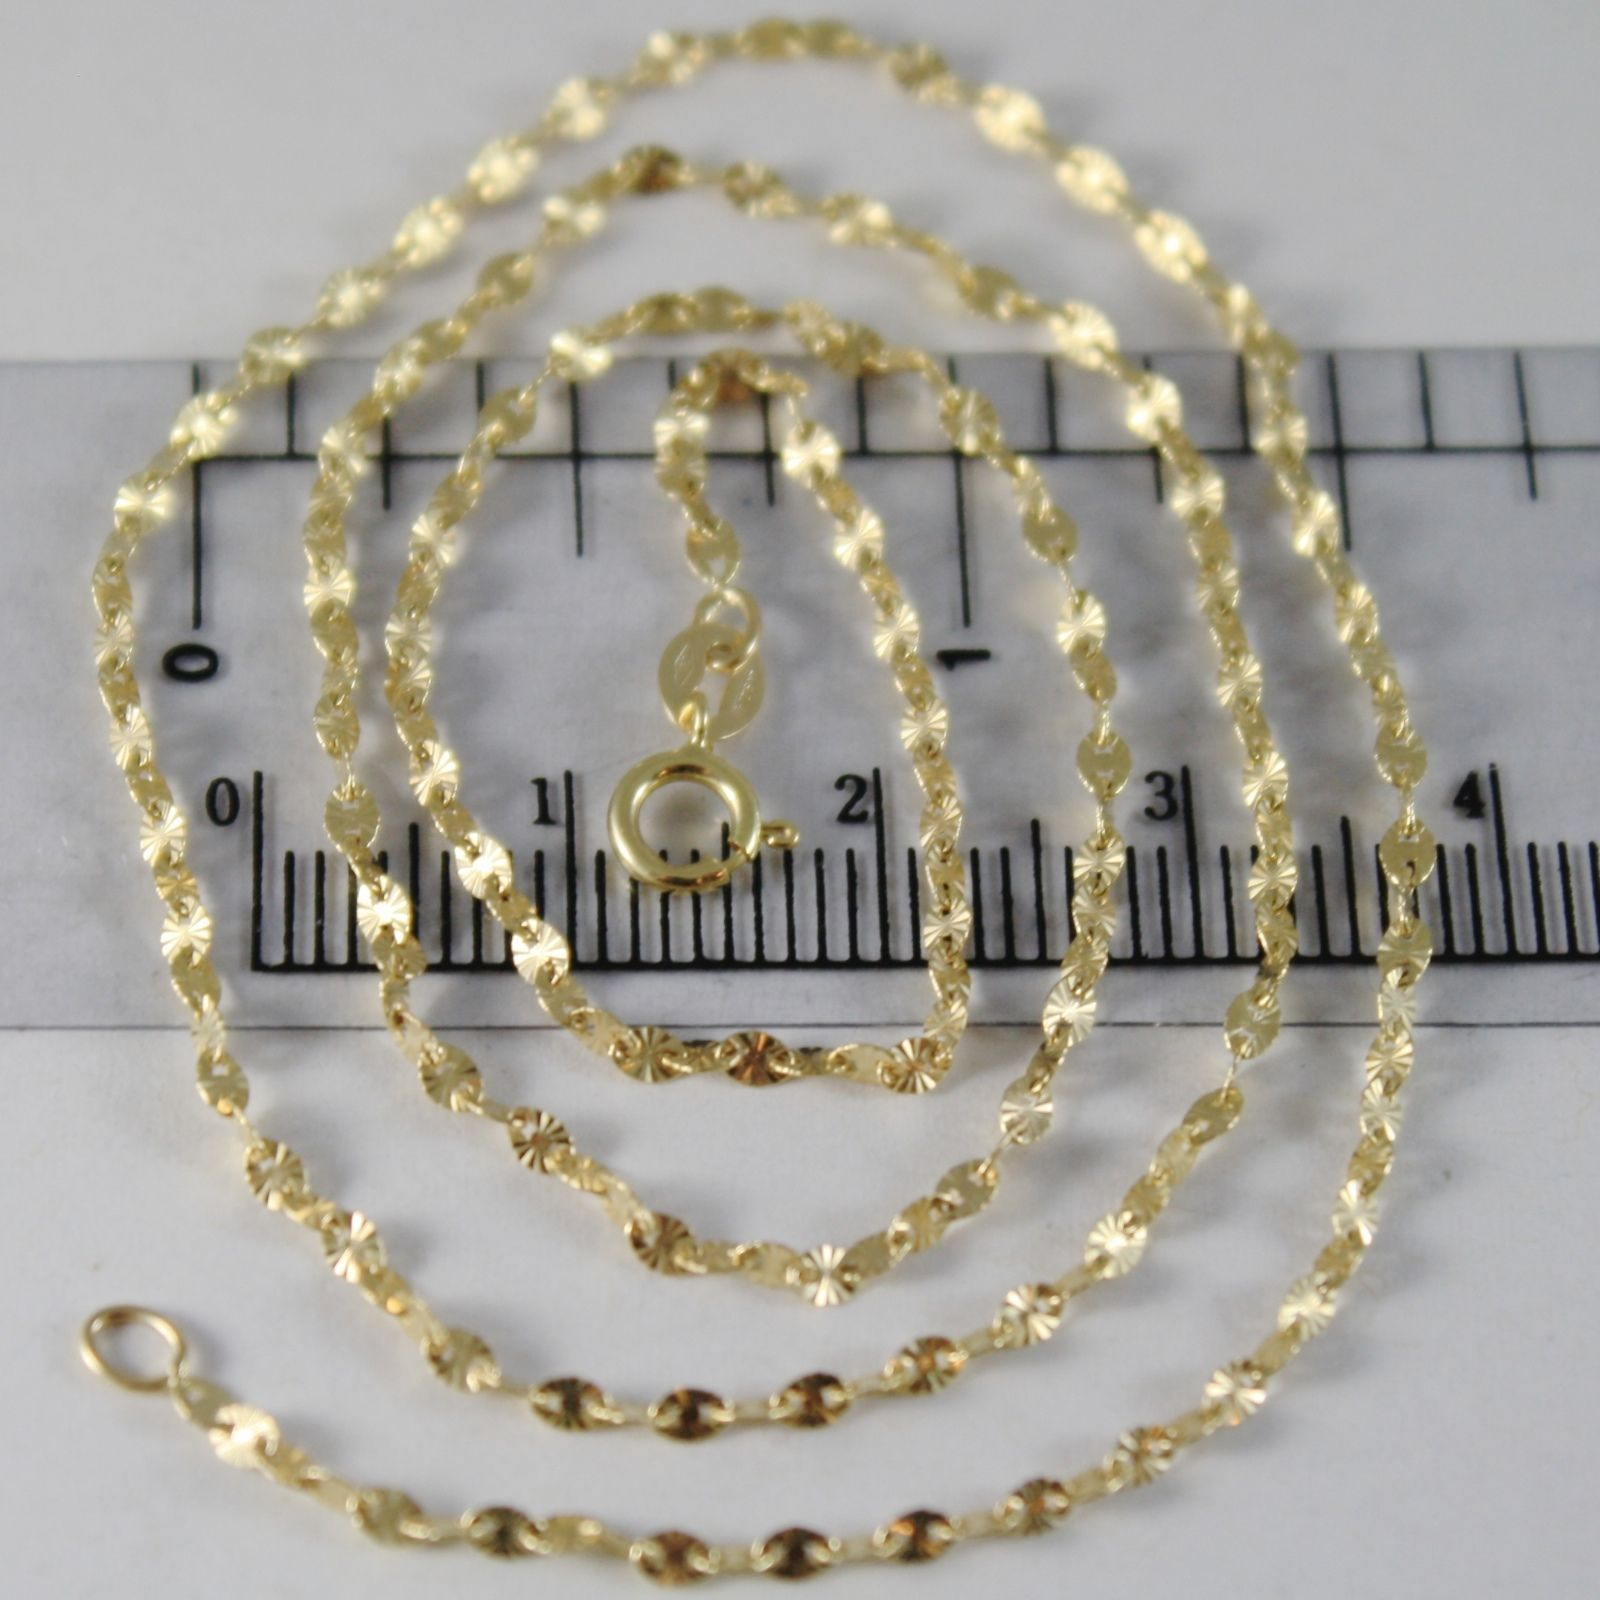 18K YELLOW GOLD CHAIN MINI STAR RAYS OVAL MESH 2 MM, 17.70 INCHES MADE IN ITALY